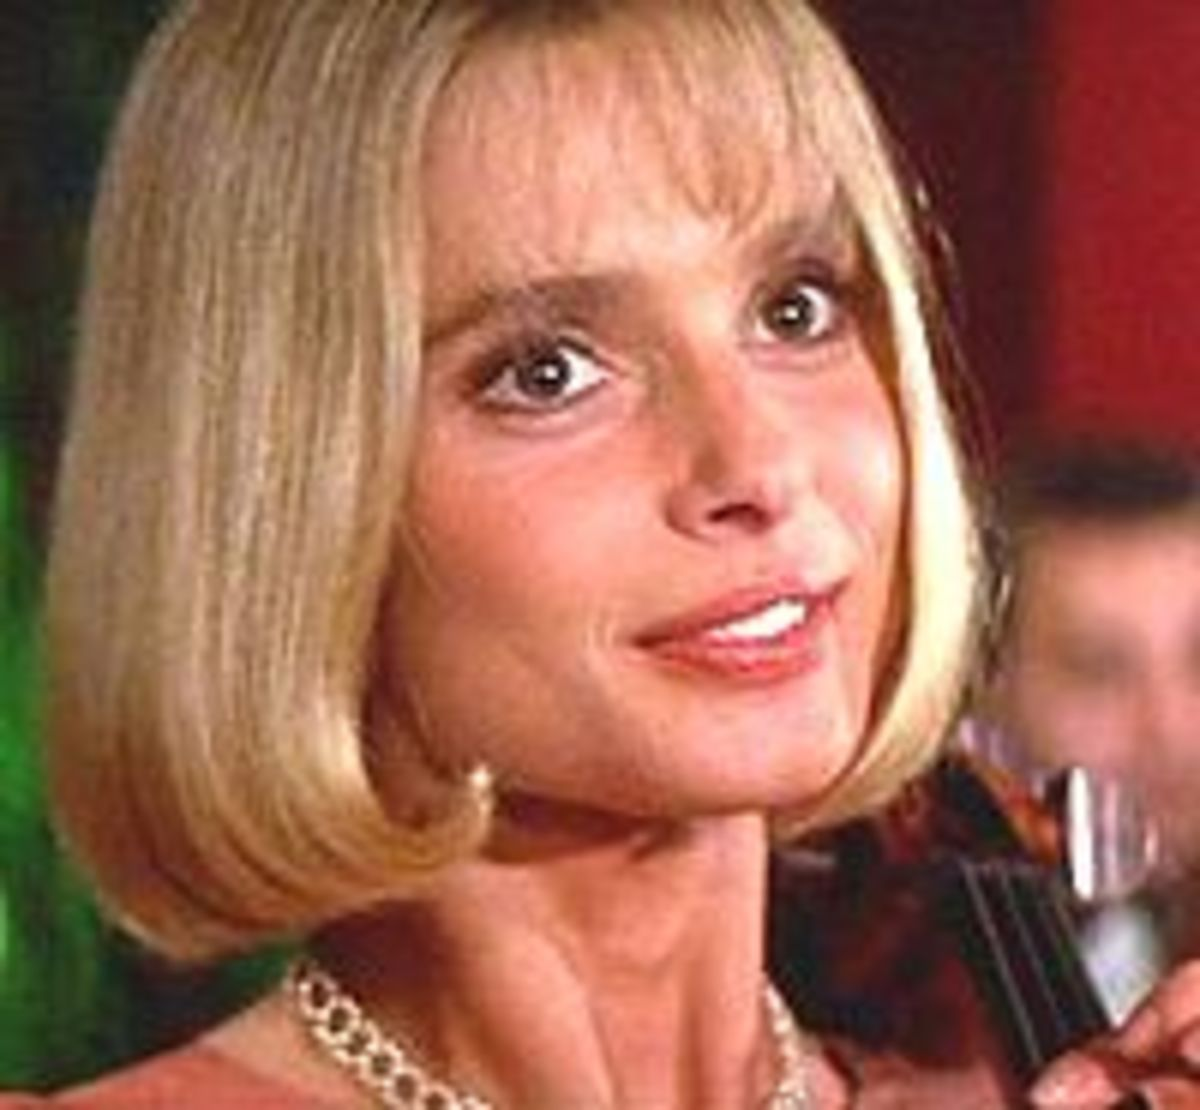 Maryam d'Abo as Kara Milovy